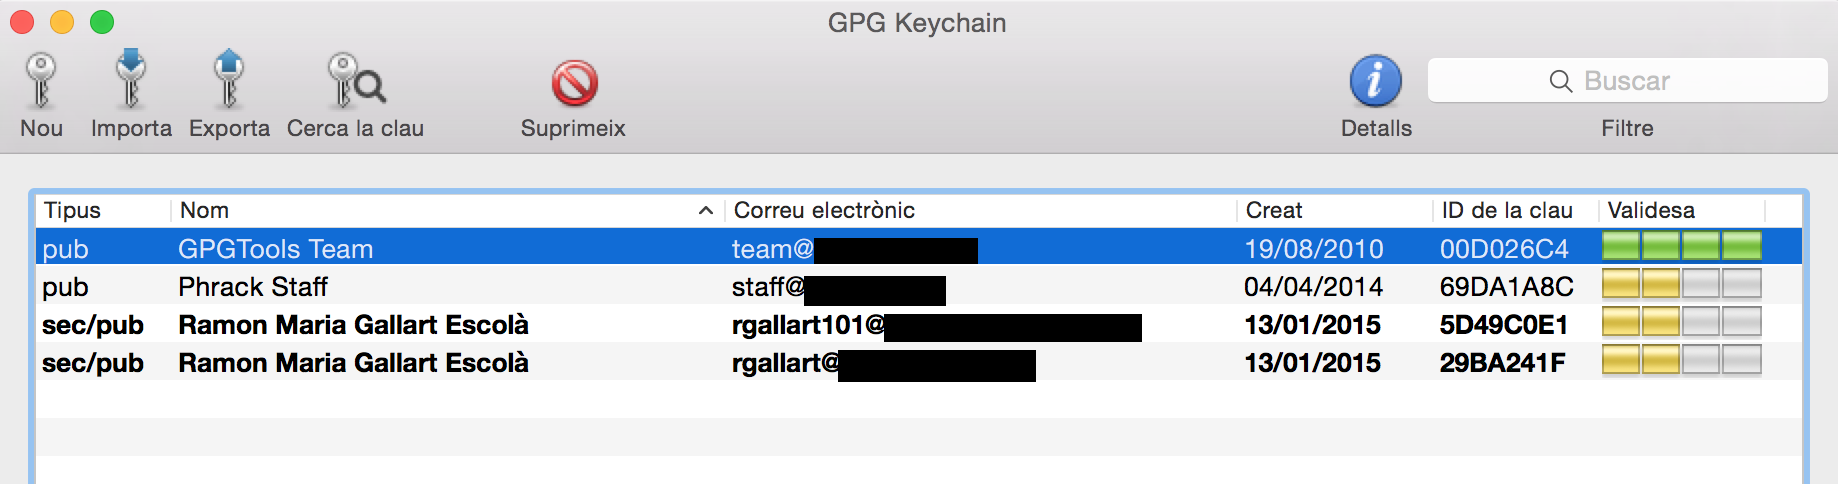 Image showing the GnuPG Keychain